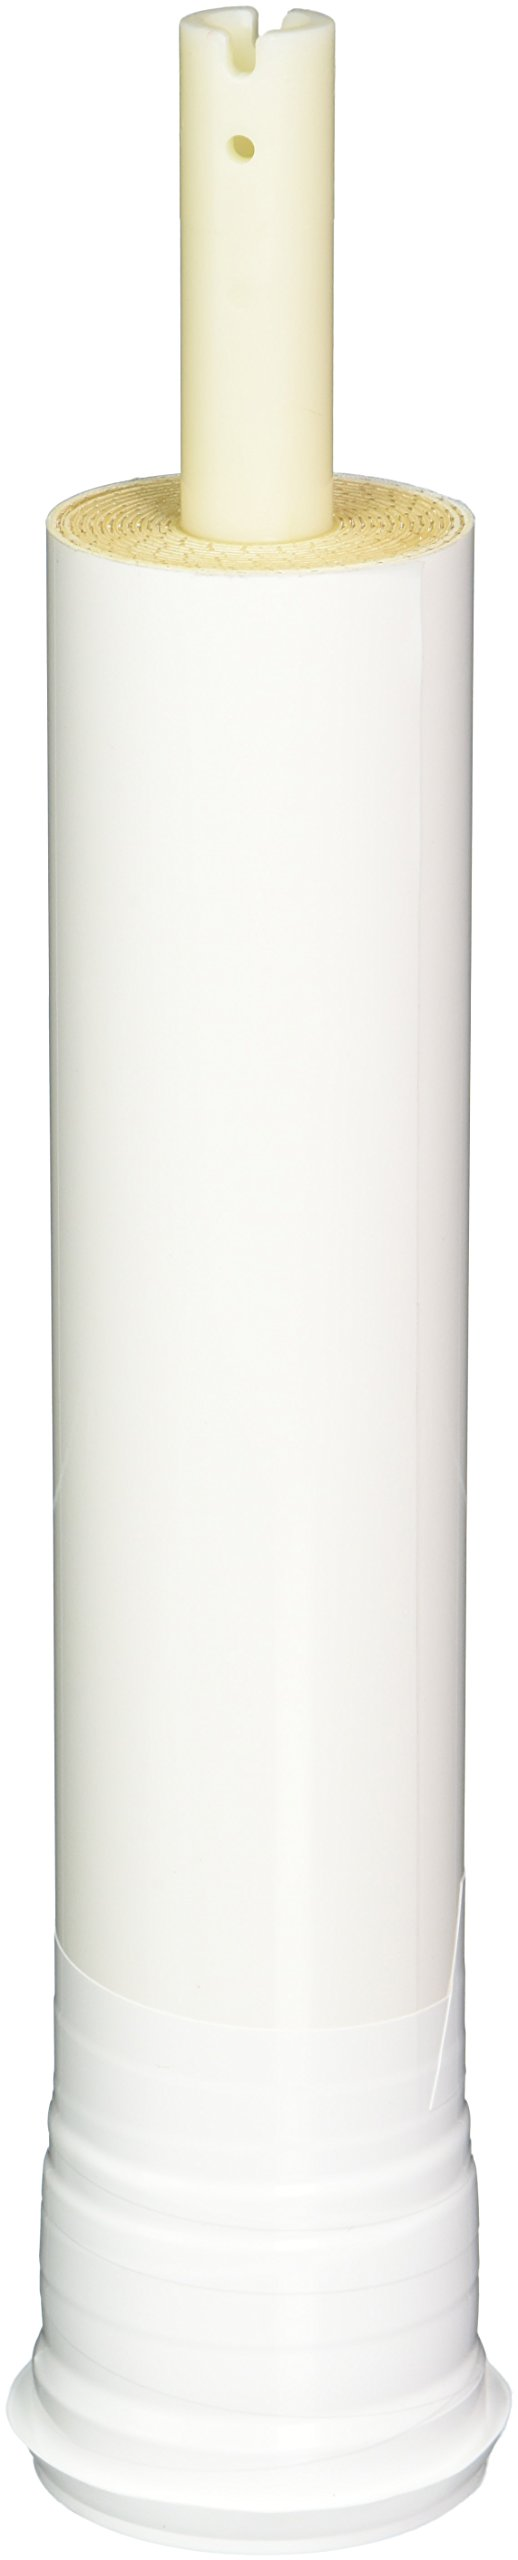 Microline Clack S-1229RS TFC-50 Reverse Osmosis Membrane by Microline